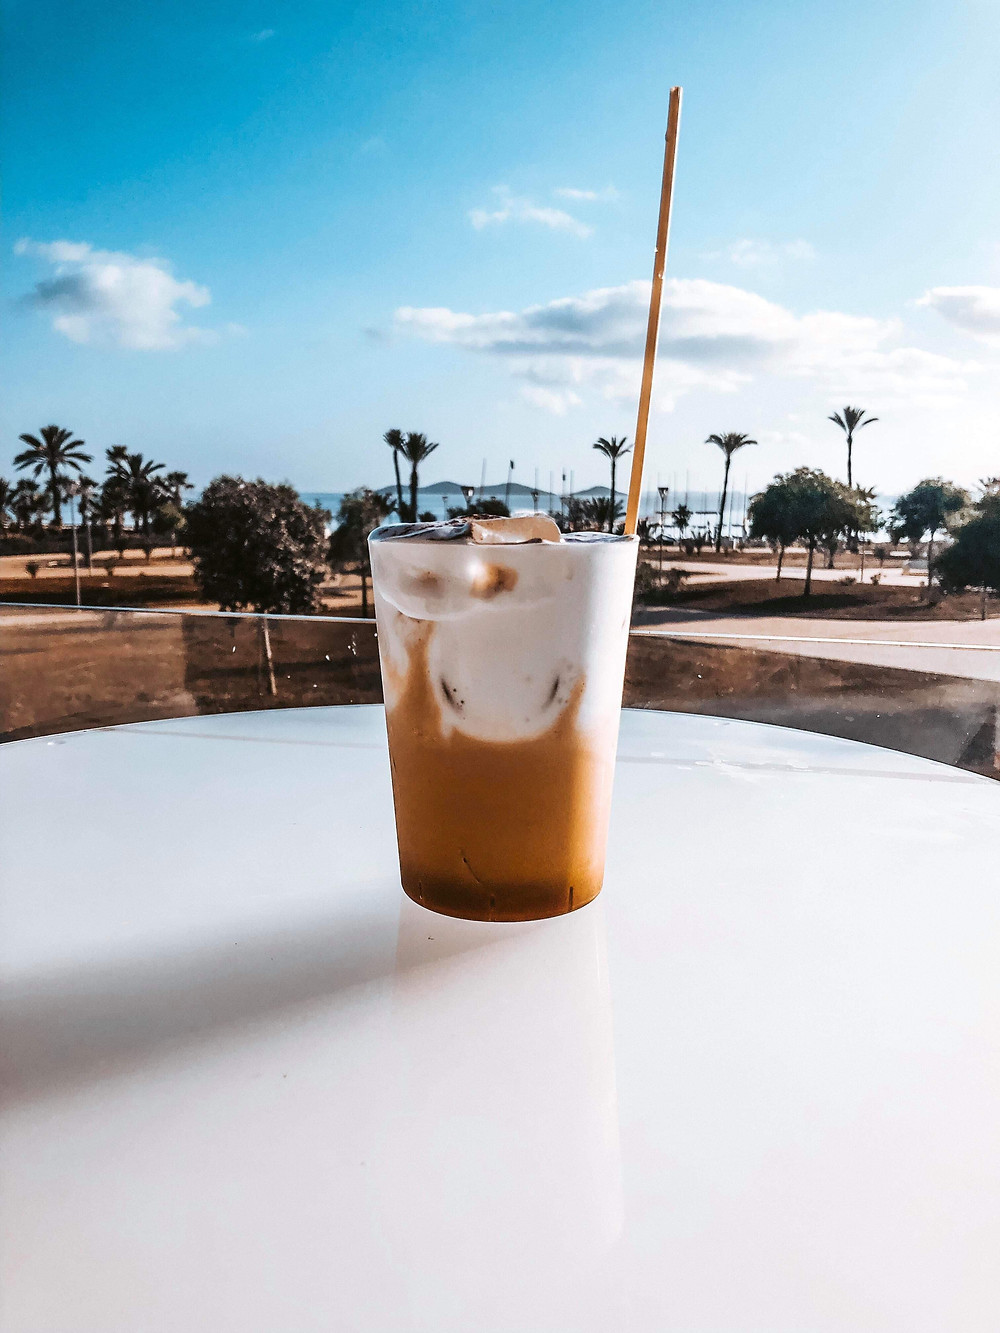 Biodegradable straws made from wheat are an eco friendly alternative to plastic straws